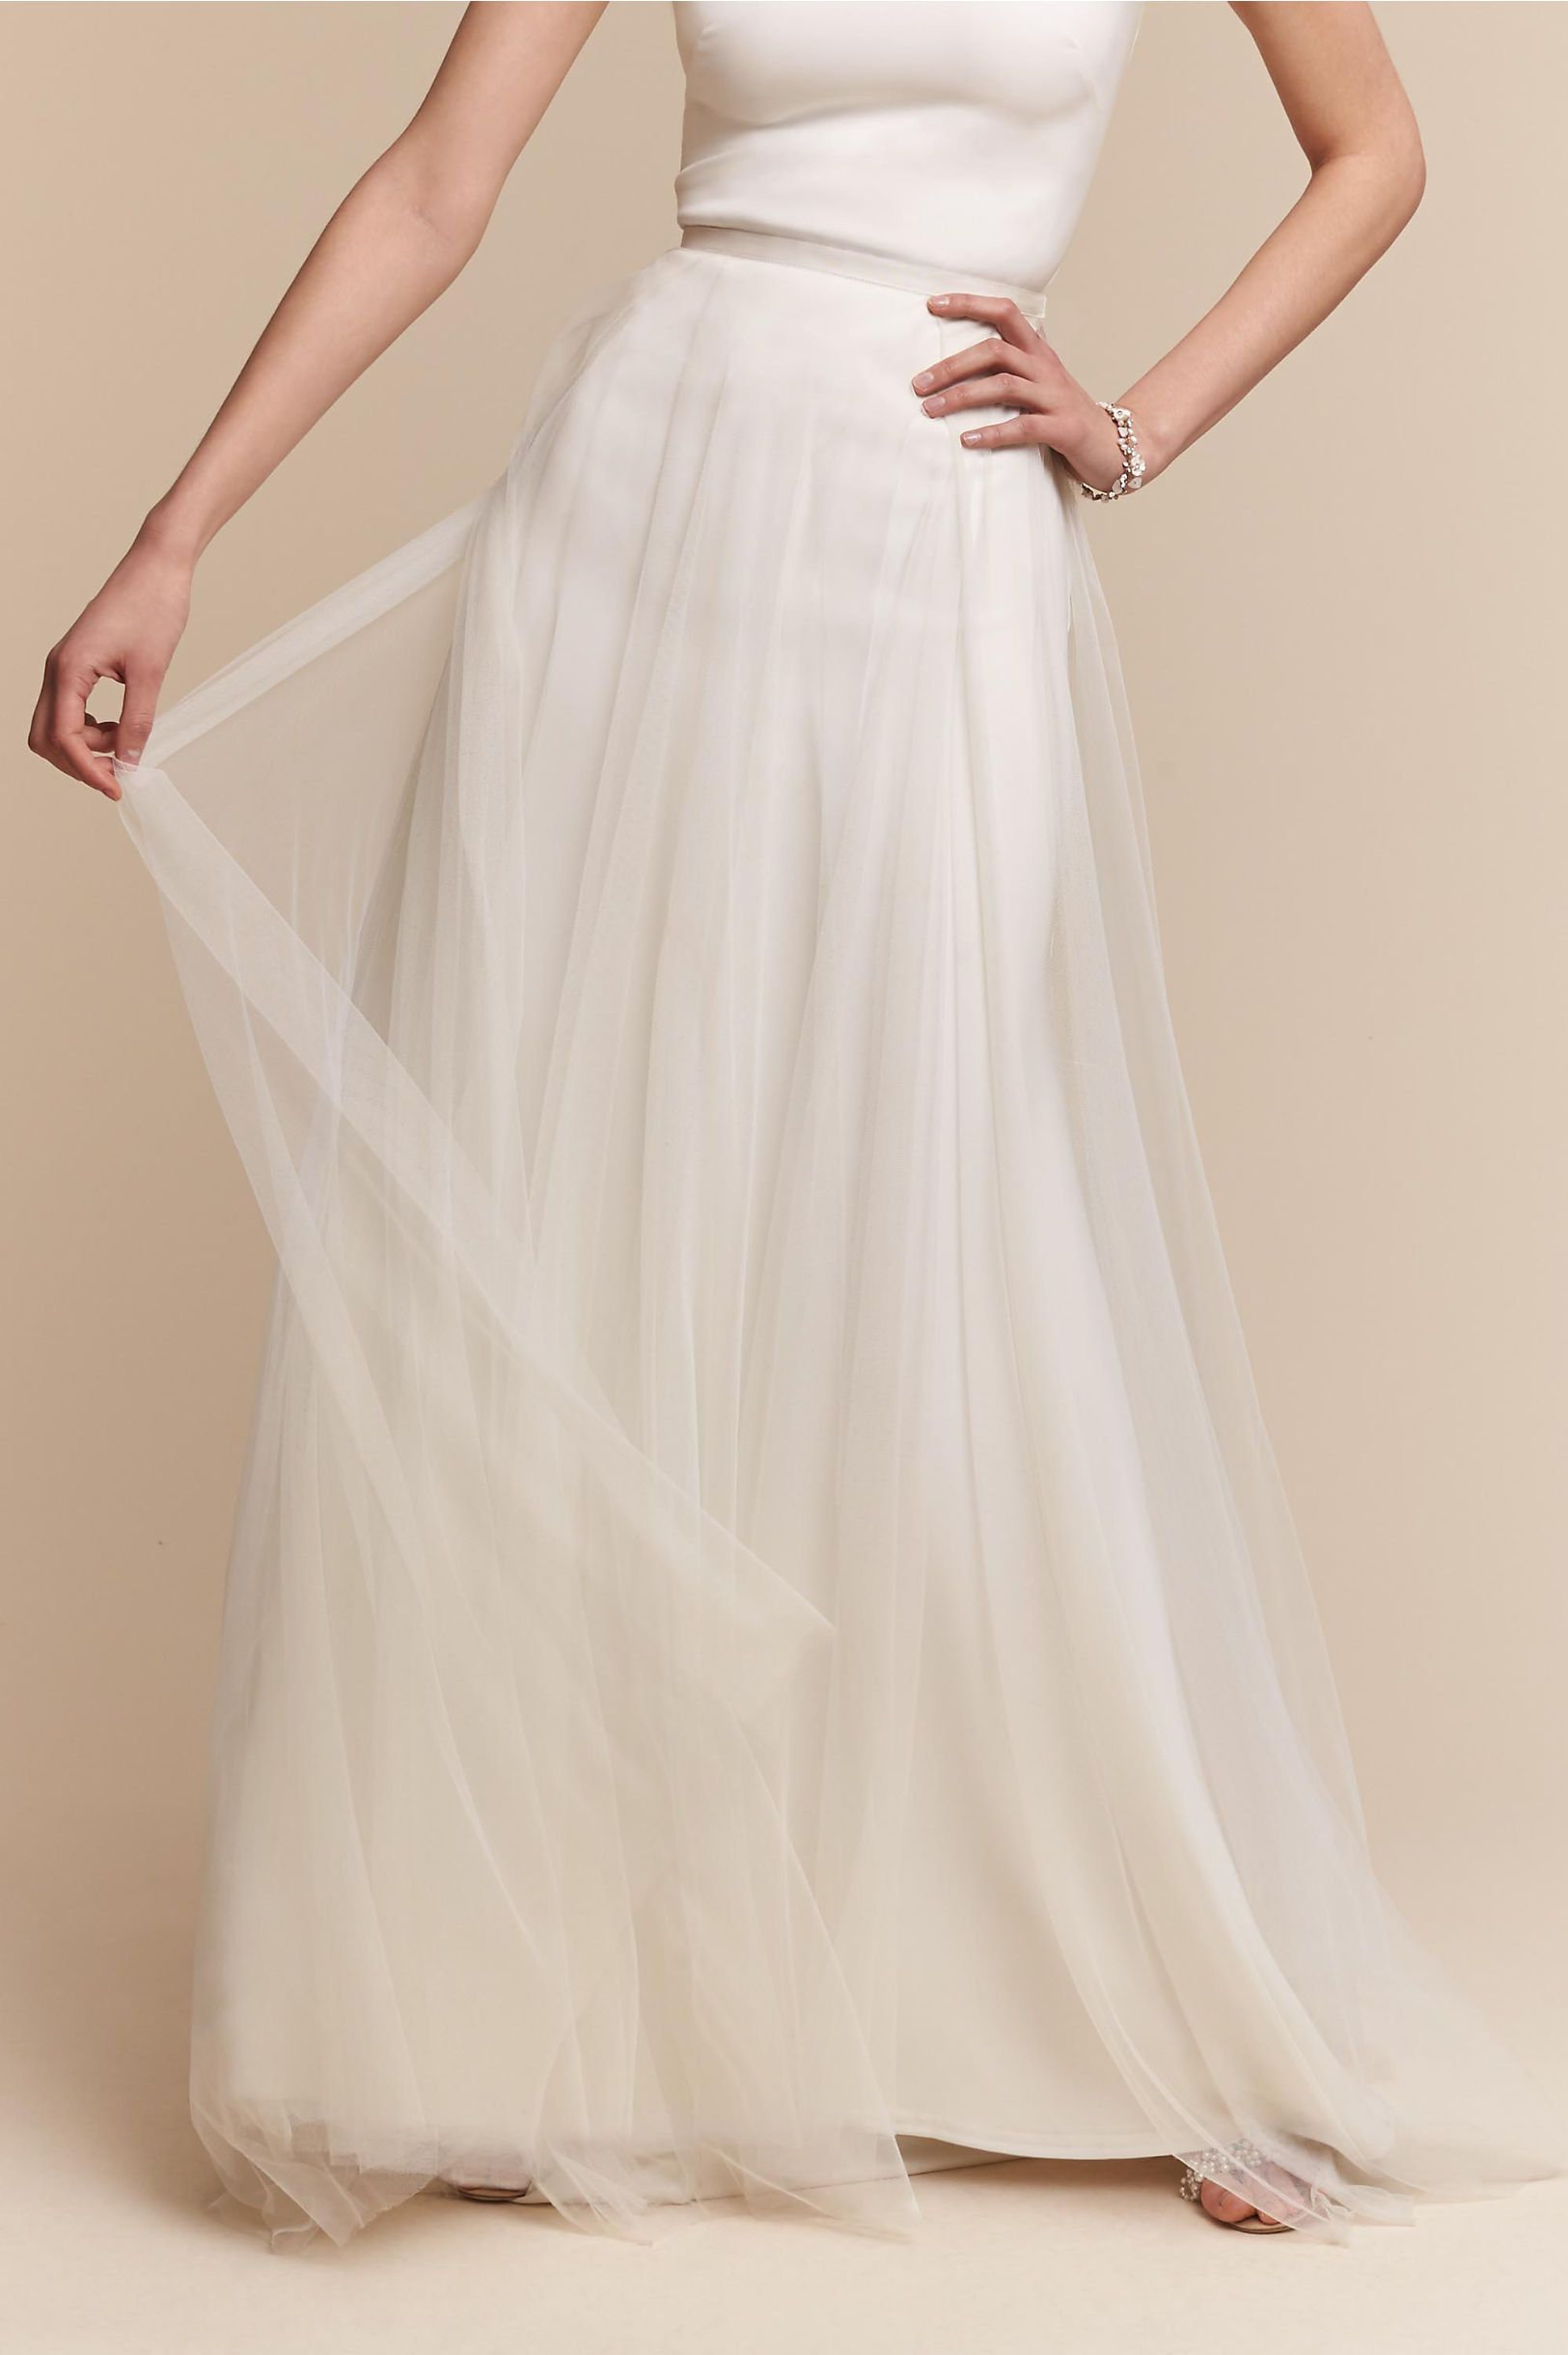 Design Your Own Wedding Dress Online With BHLDNs Build Look Feature Mix And Match Bridal Separates To Create Perfect Gown